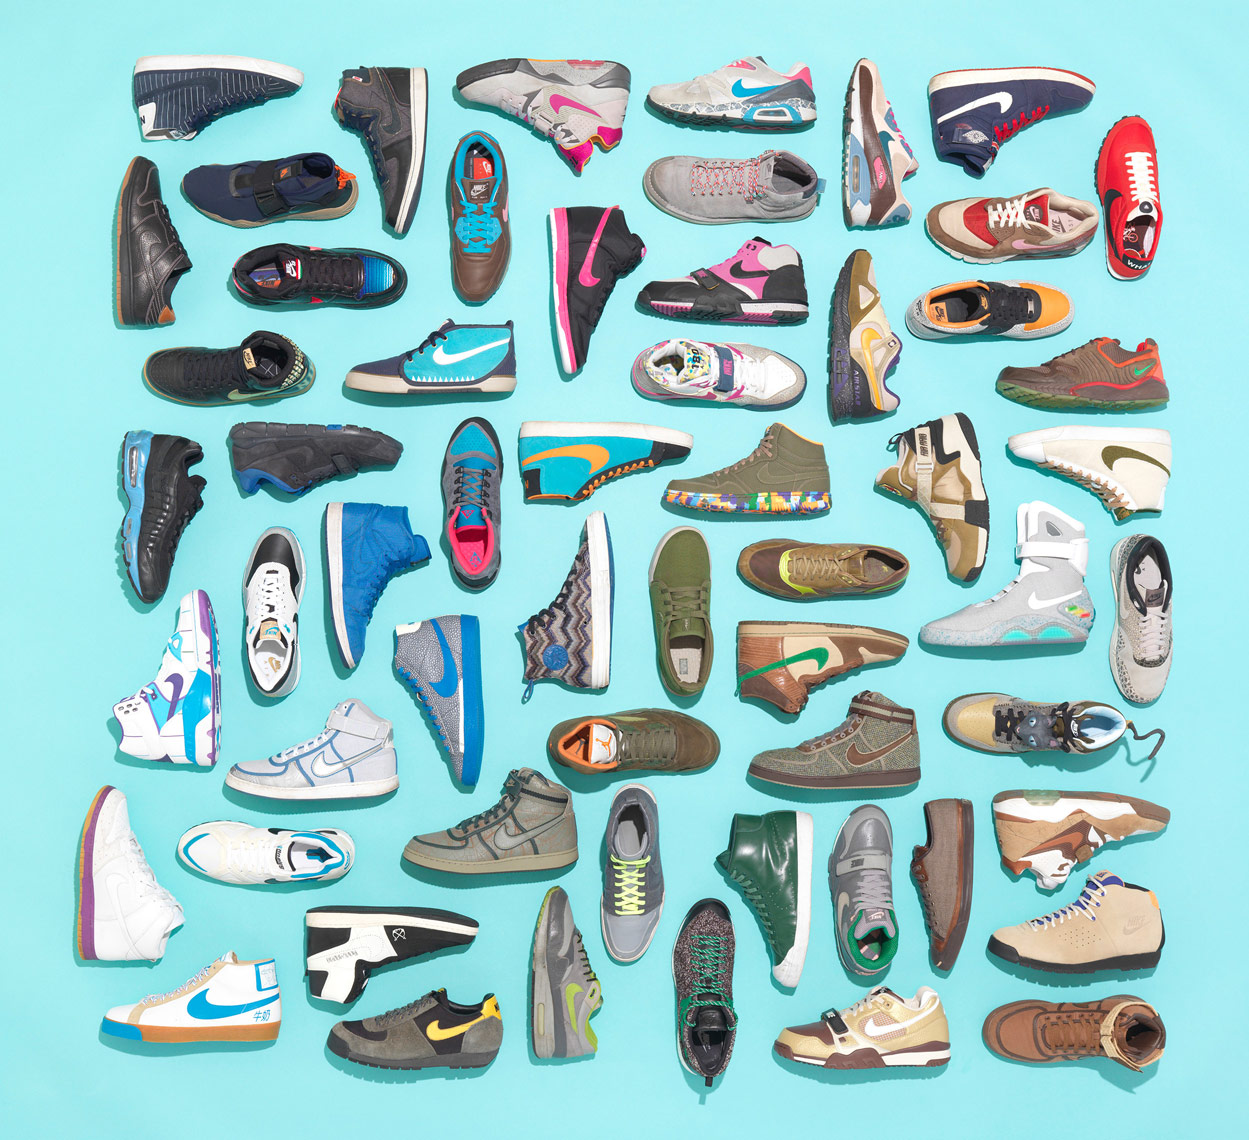 nike sneaker collection artfully arranged neatly on a light blue background